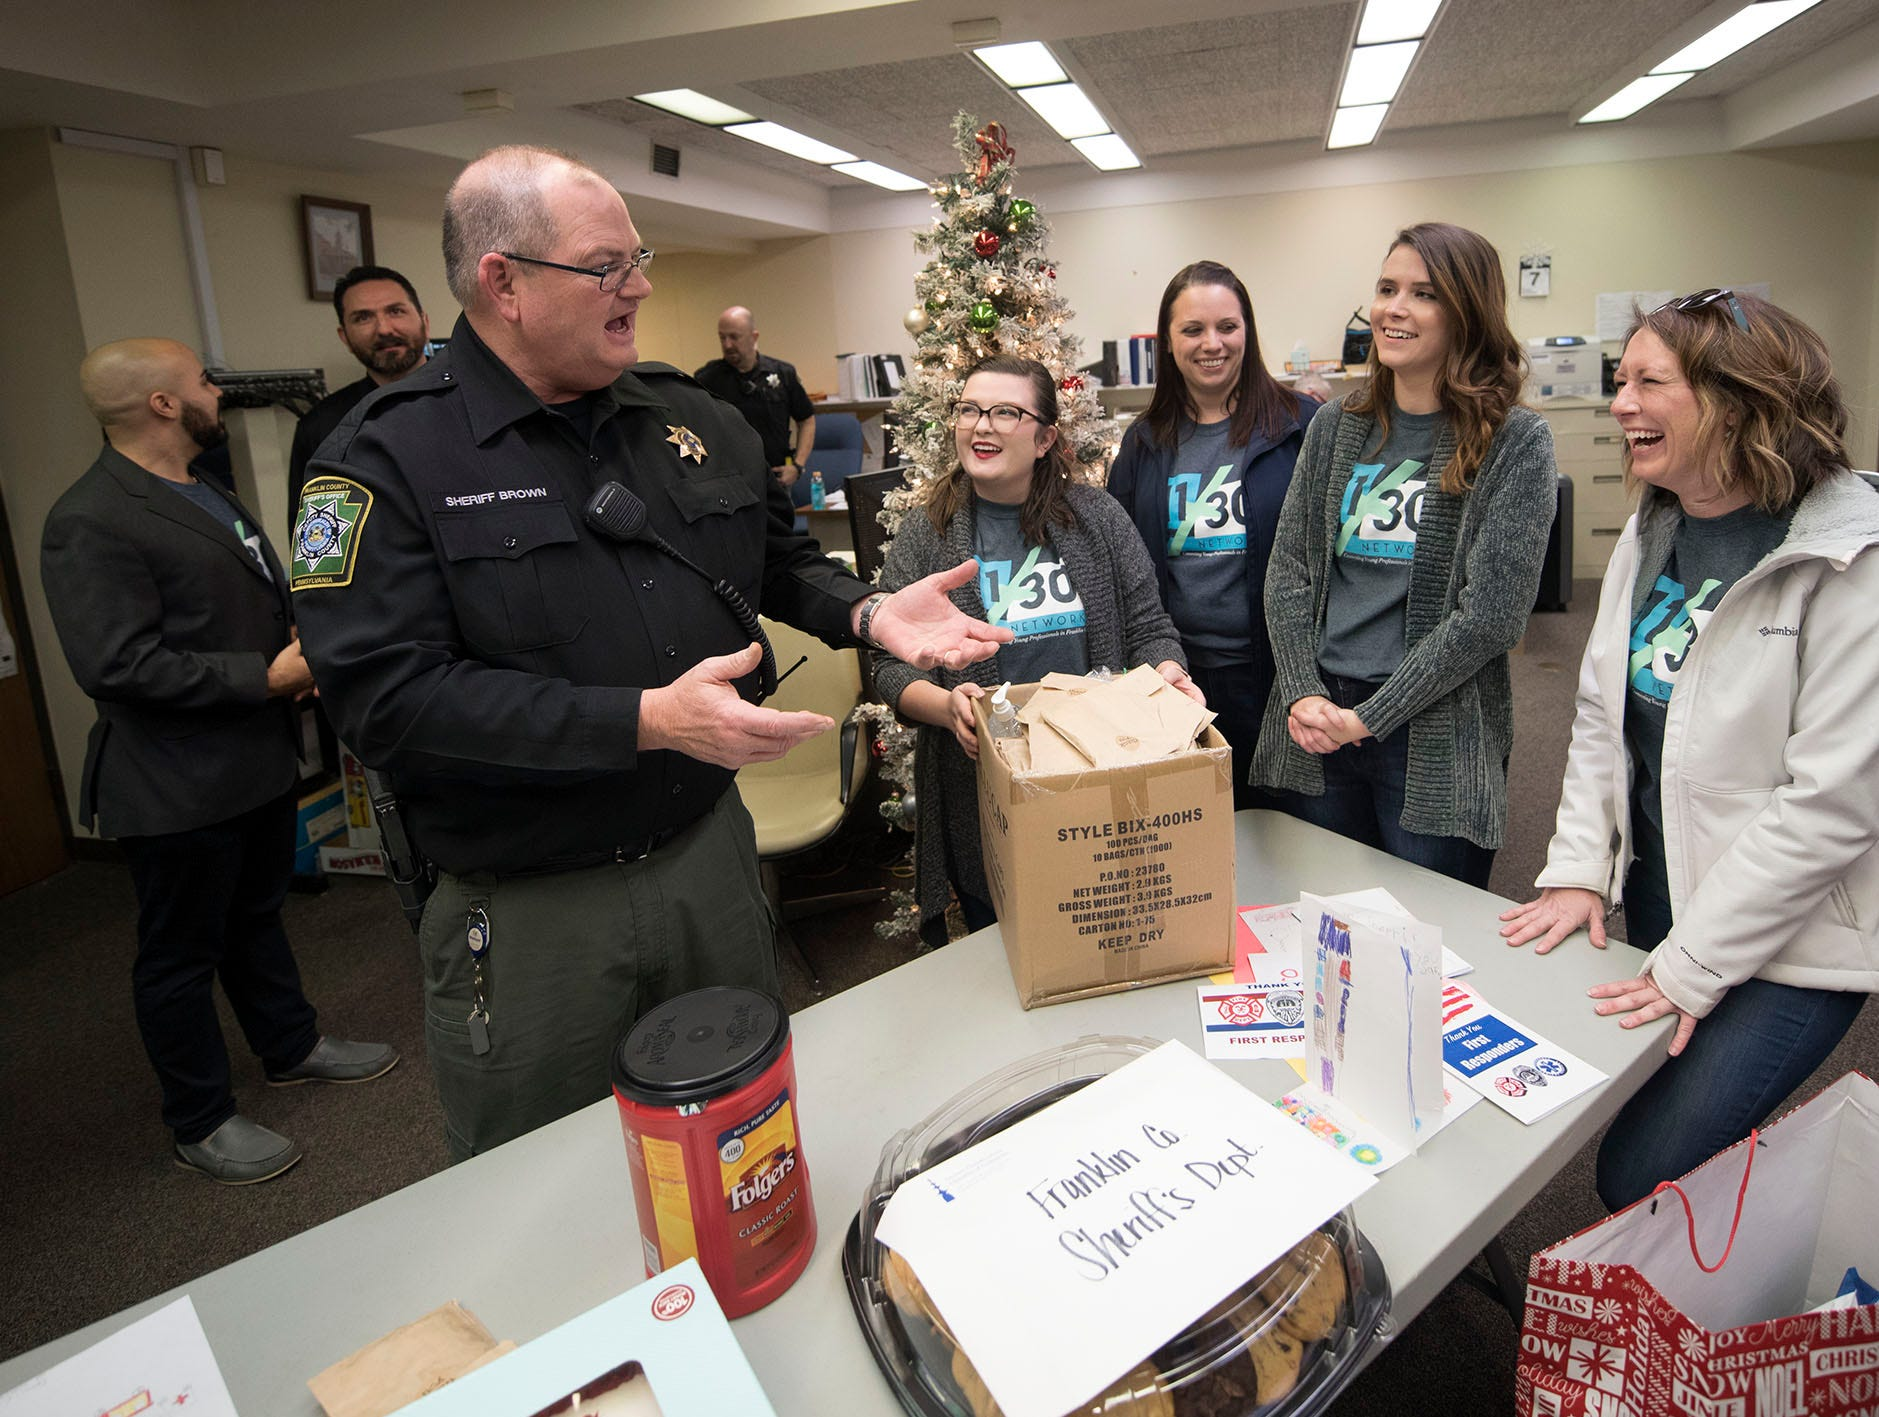 Sheriff Jim Brown, left, greets 11/30 member Logan Peters, Sara Ziegler, Lacey Kipe and Tracy Ross. The 11/30 Network is hosting its annual First Responders Appreciation Day on Friday, December 7, 2018. The steering committee visited the Franklin County Sheriff's office and over 35 other first responder stations to deliver care packages.